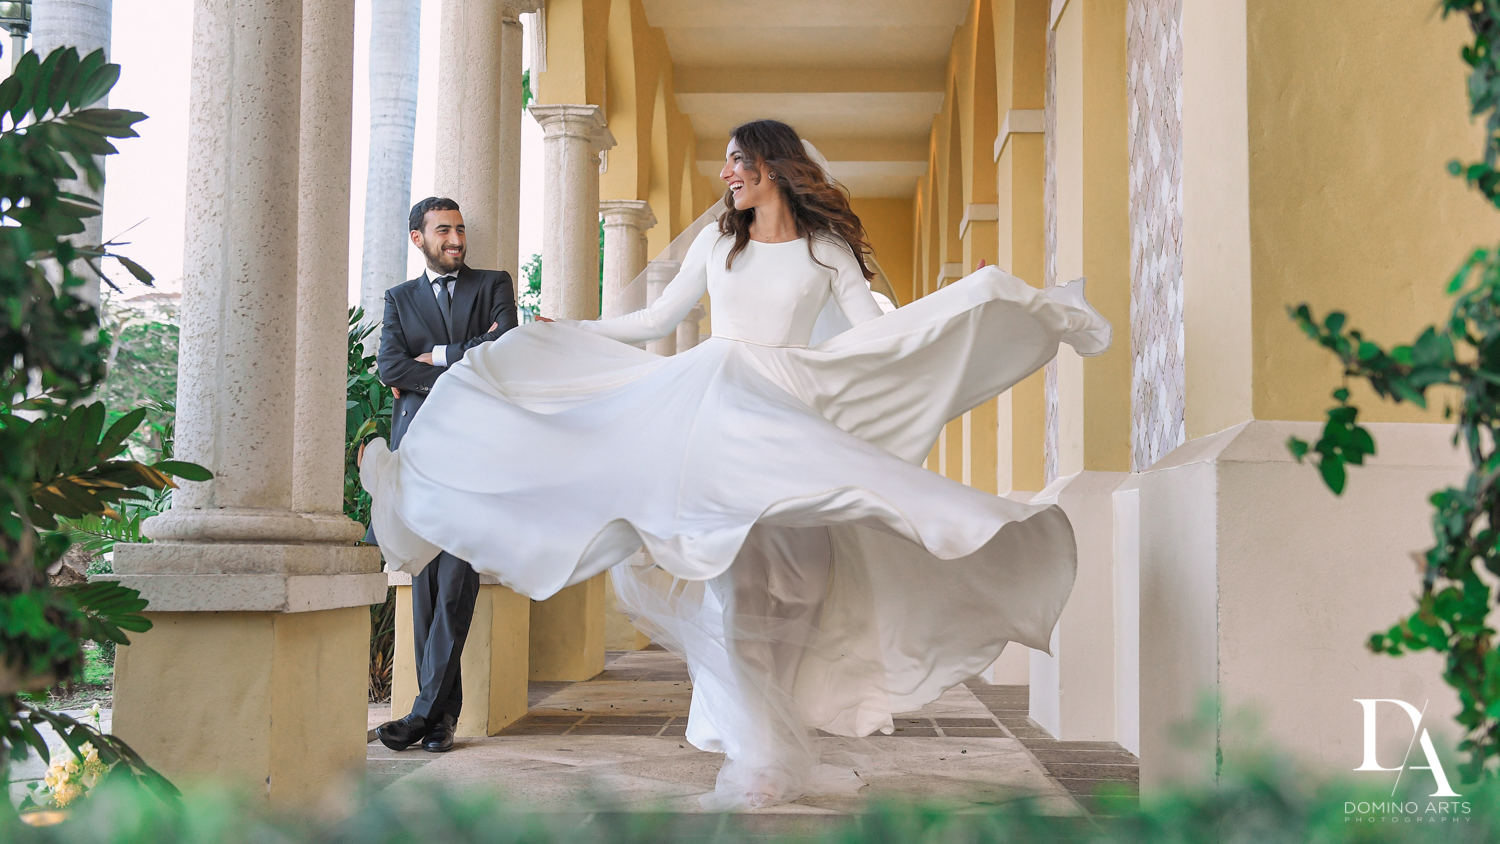 spinning bride at Hasidic Jewish Wedding at The Addison in Boca Raton by Domino Arts Photography